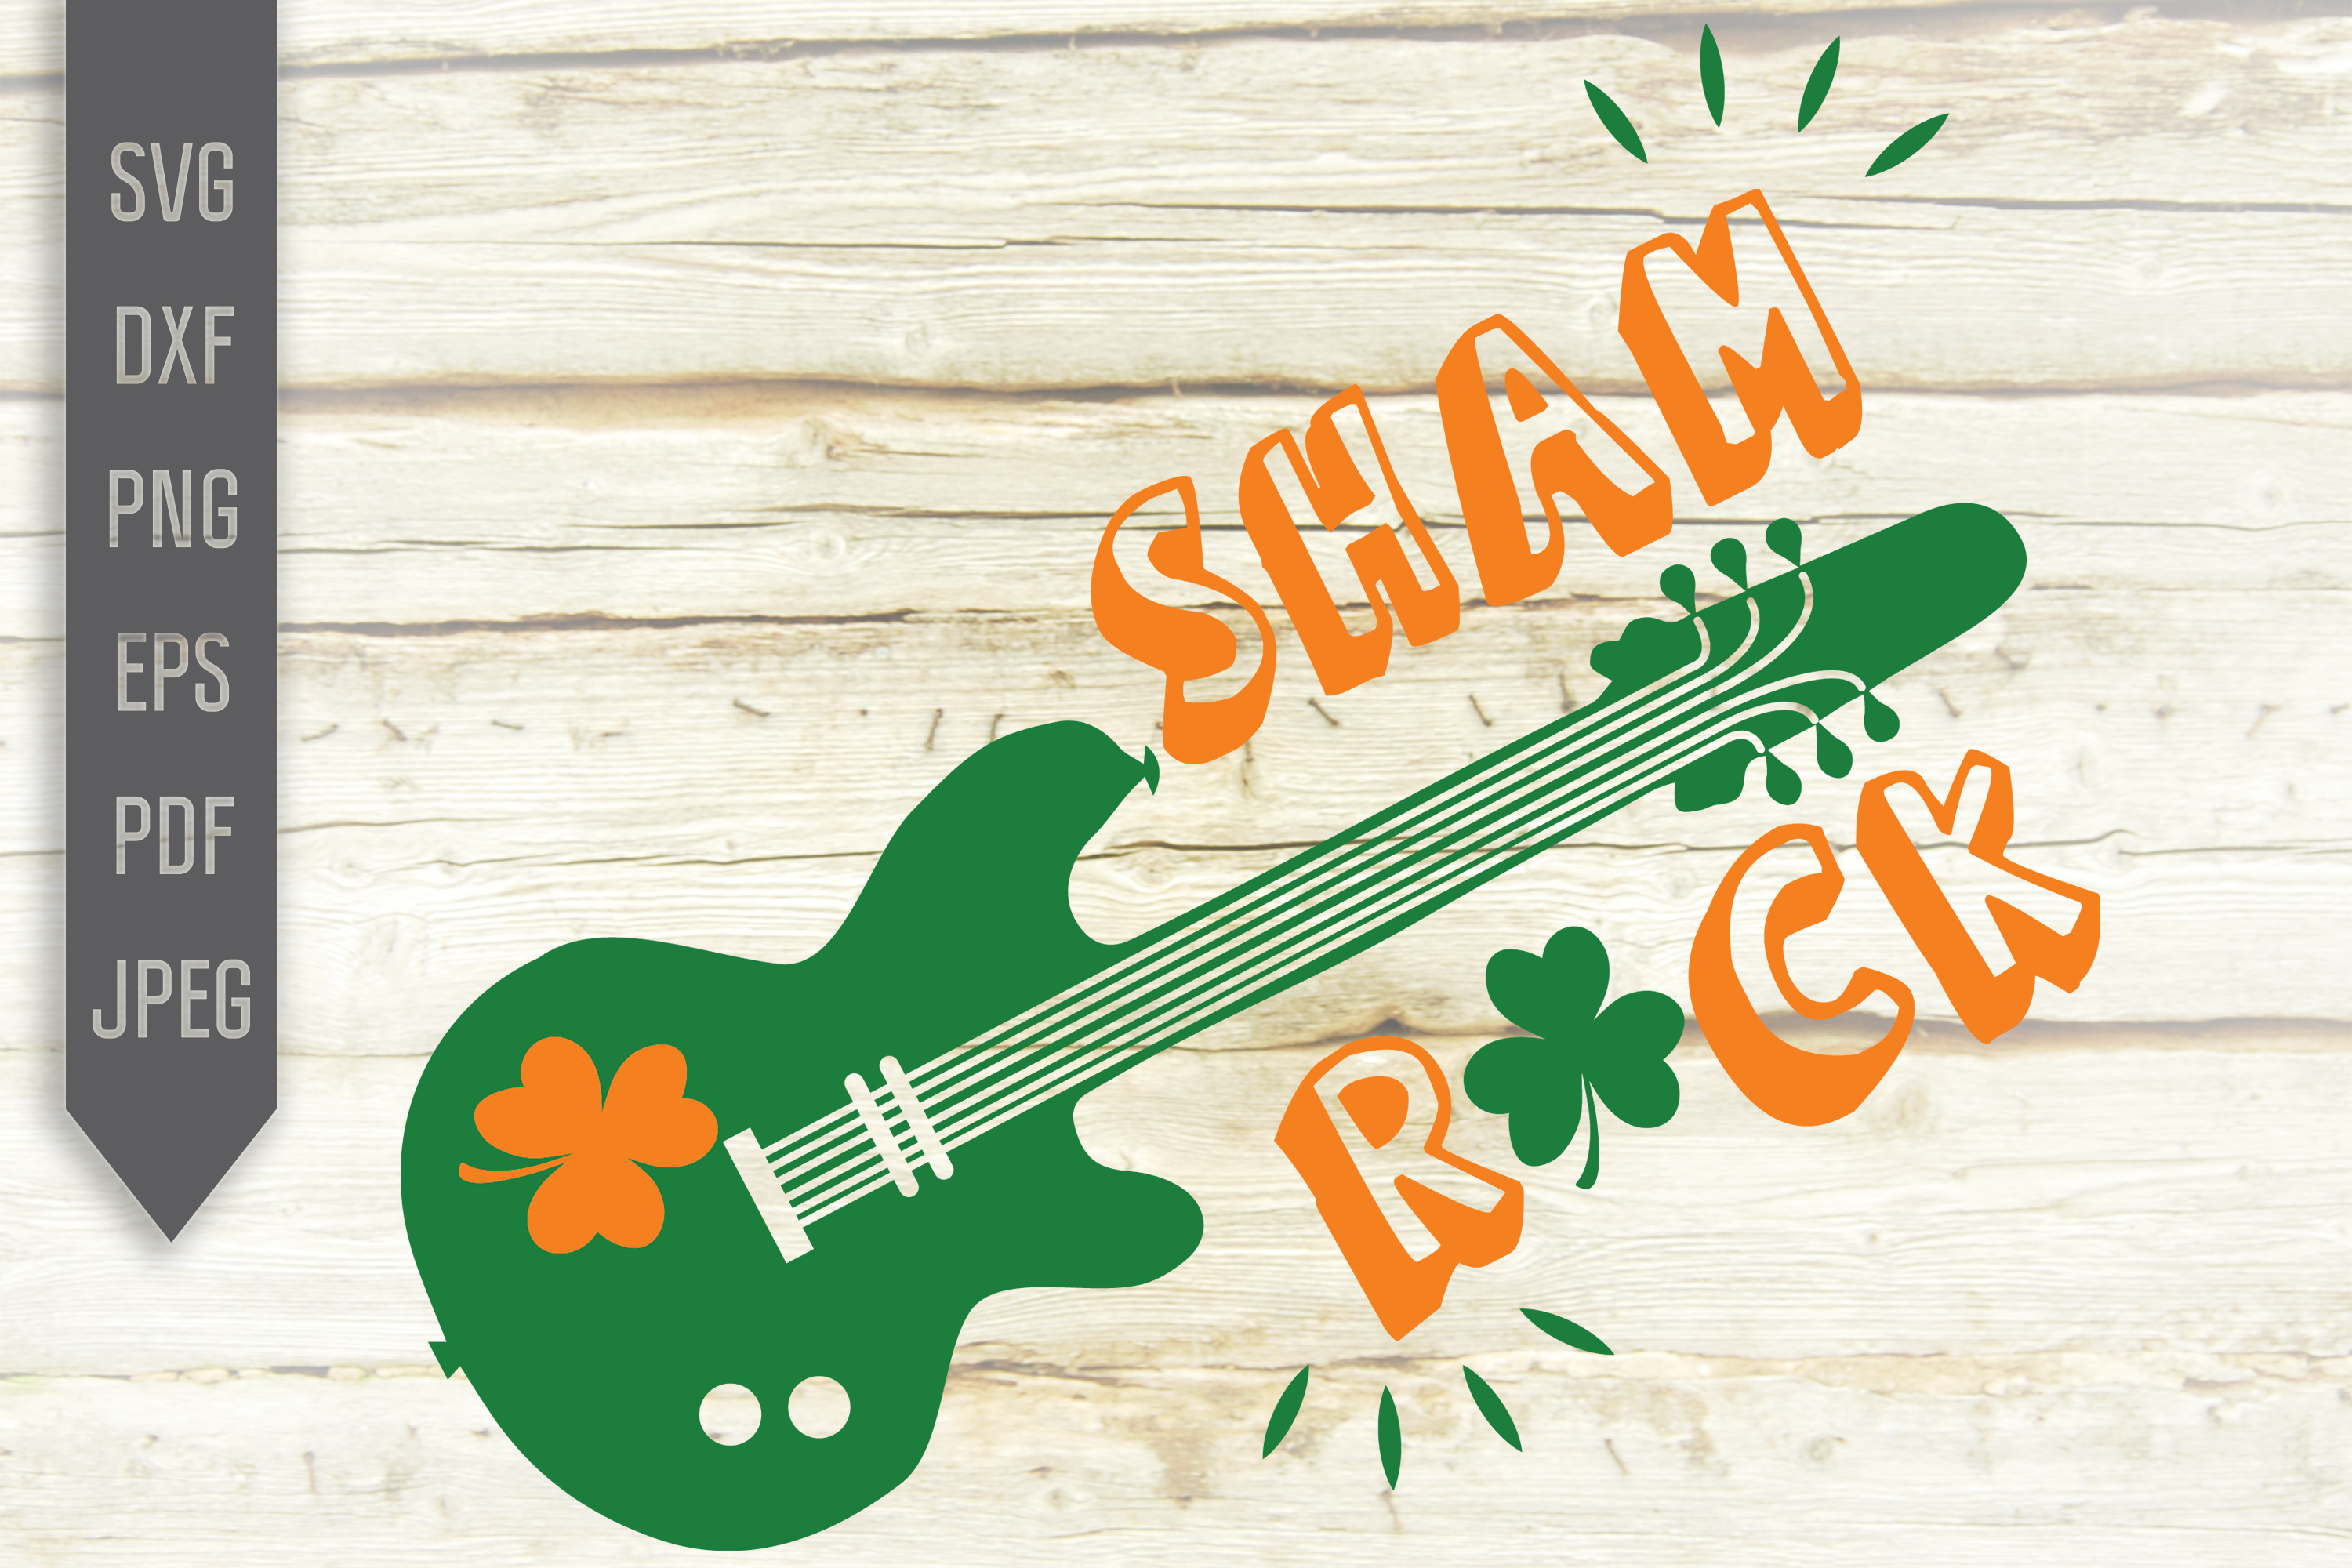 Download Free Guitar St Patrick S Graphic By Svglaboratory Creative Fabrica for Cricut Explore, Silhouette and other cutting machines.